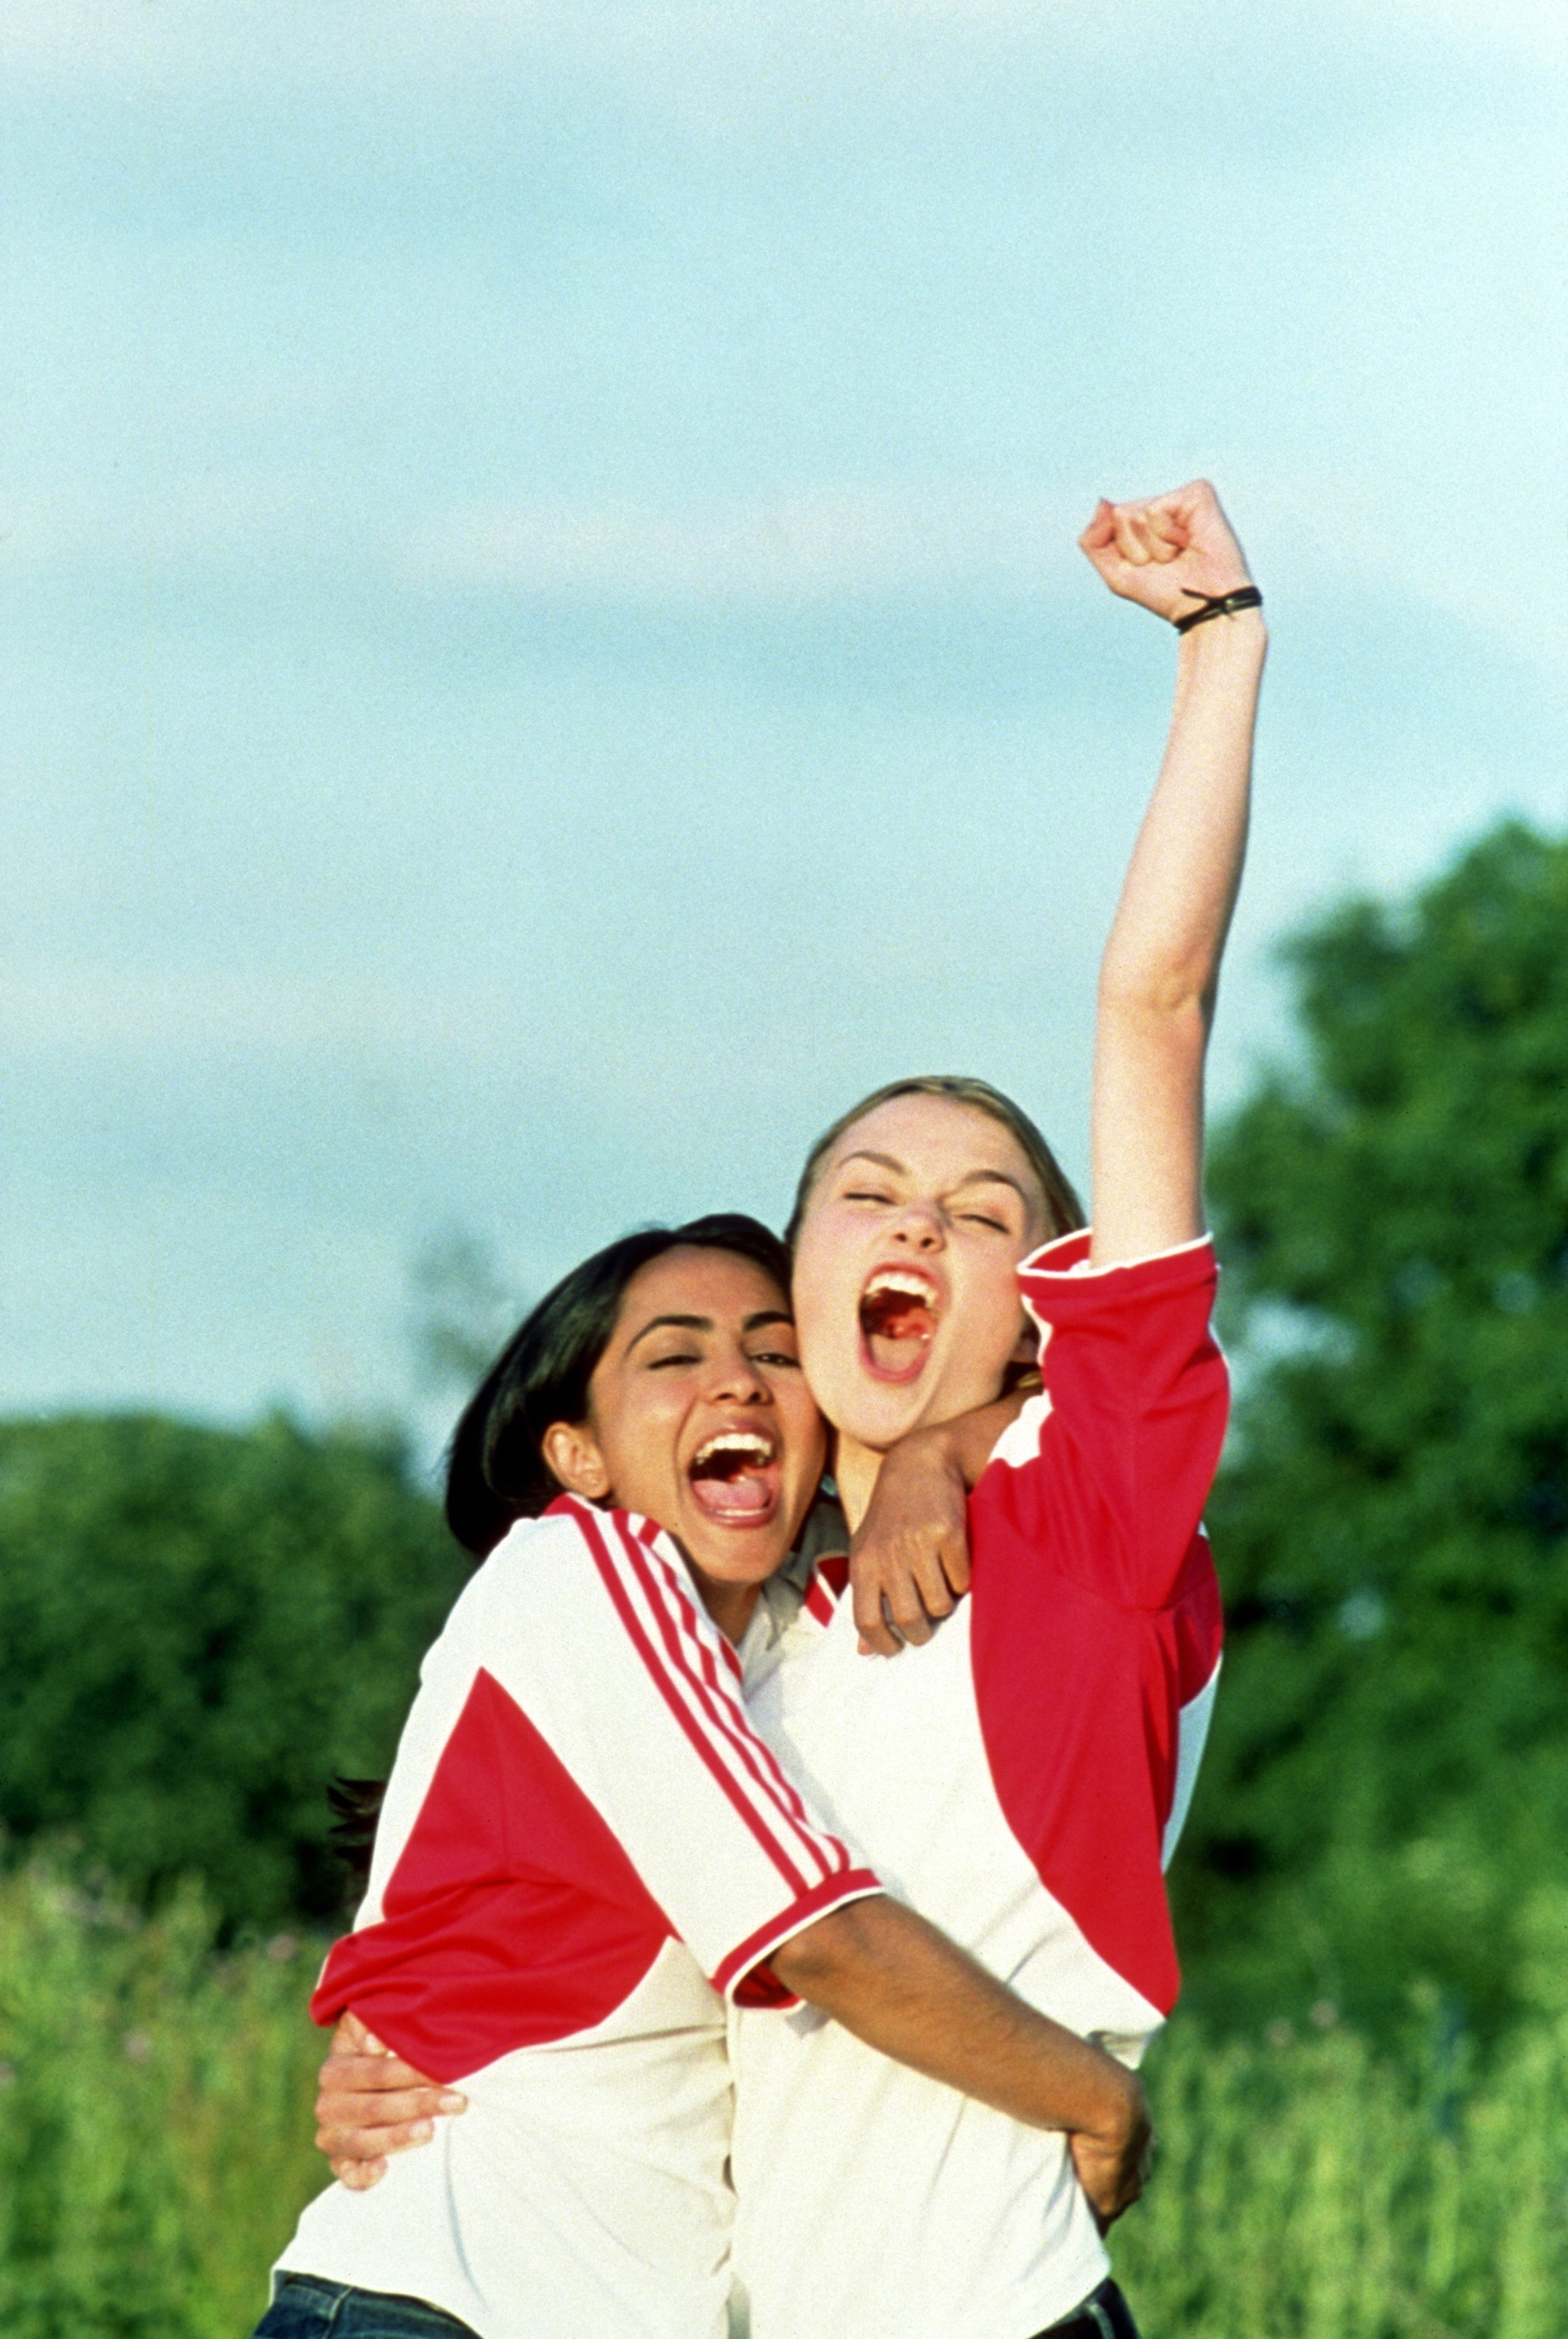 """Parminder Nagra and Keira Knightley in """"Bend It Like Beckham"""" in 2002."""